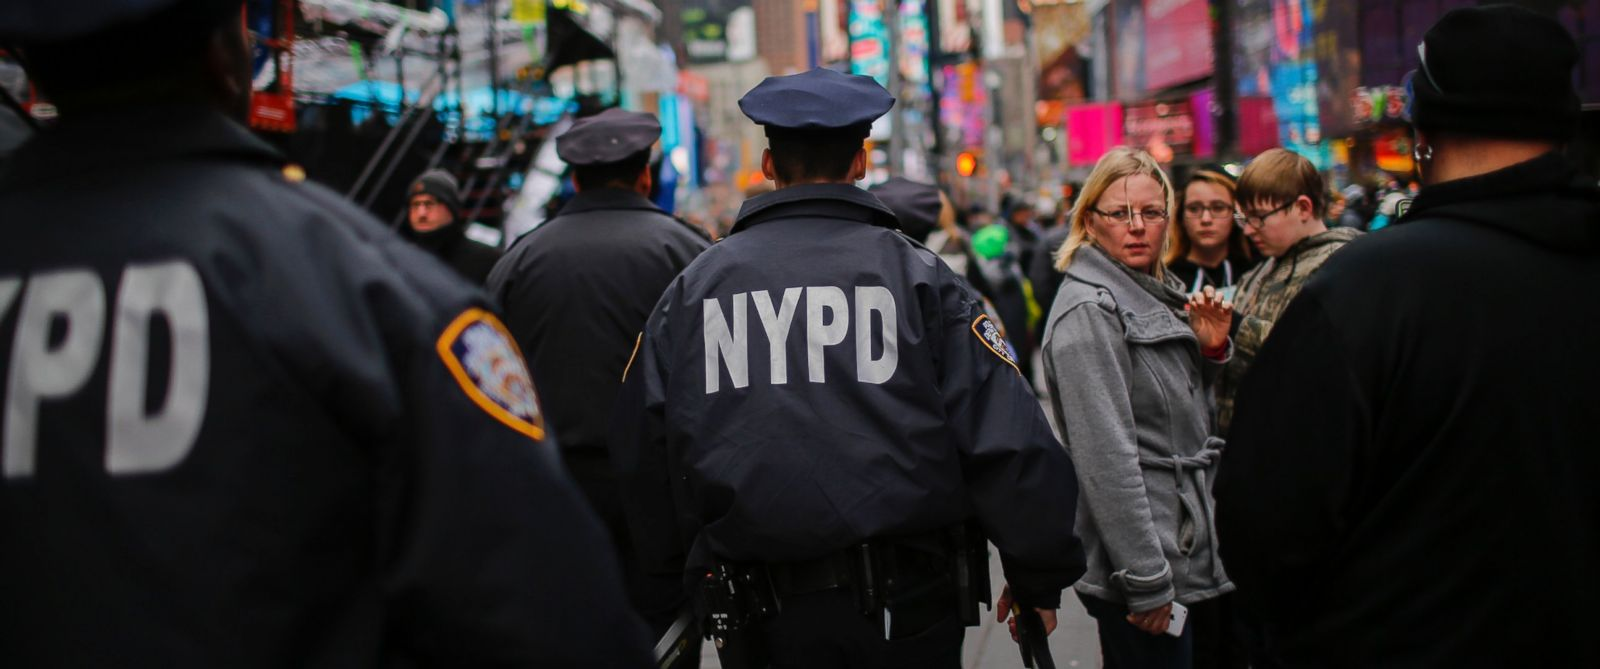 PHOTO: New York Police Officers patrol on foot and keep an eye on people at Times Square before New Years Eve celebrations, Dec. 31, 2015 in New York City.